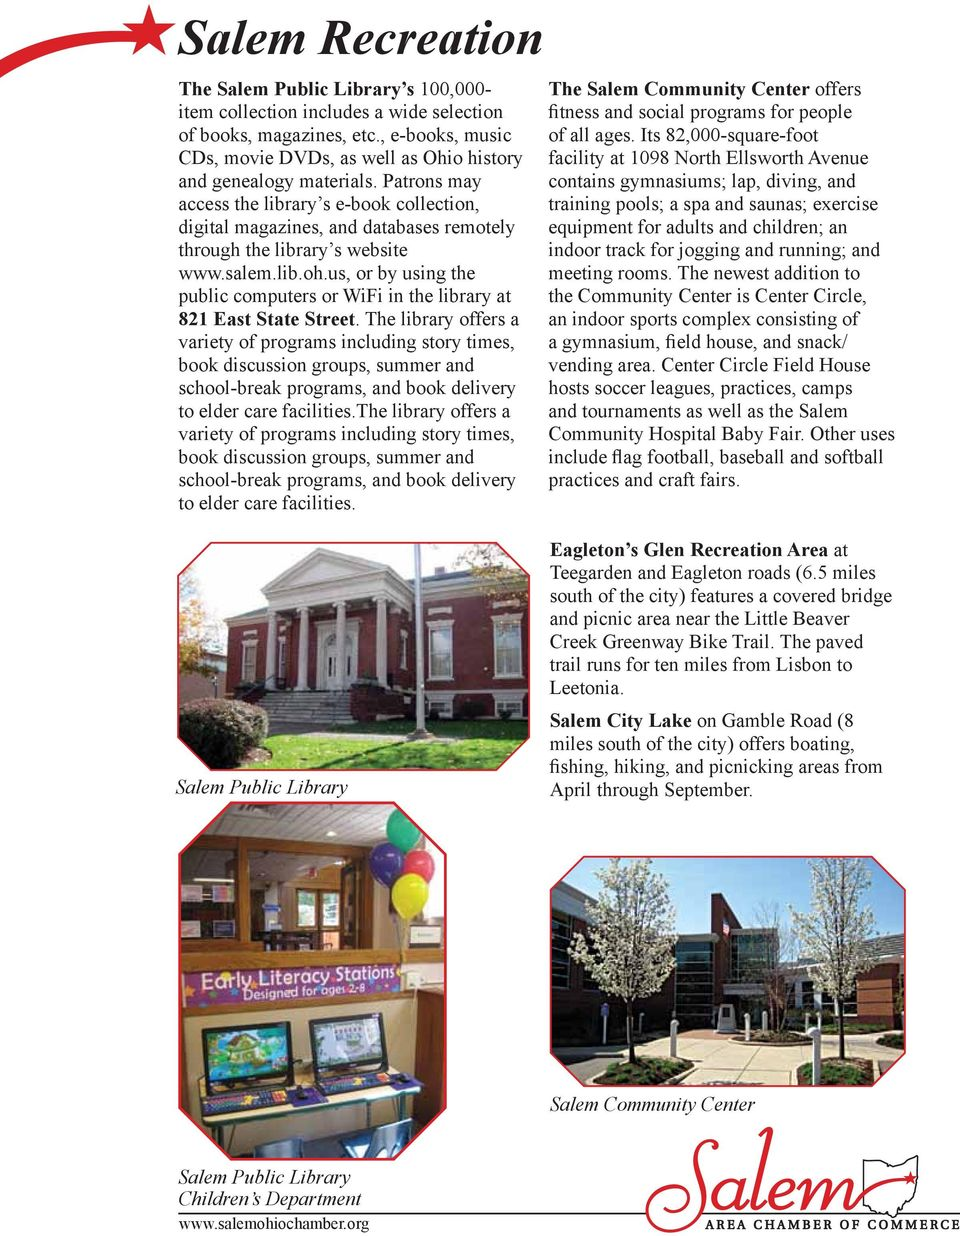 Patrons may access the library s e-book collection, digital magazines, and databases remotely through the library s website www.salem.lib.oh.